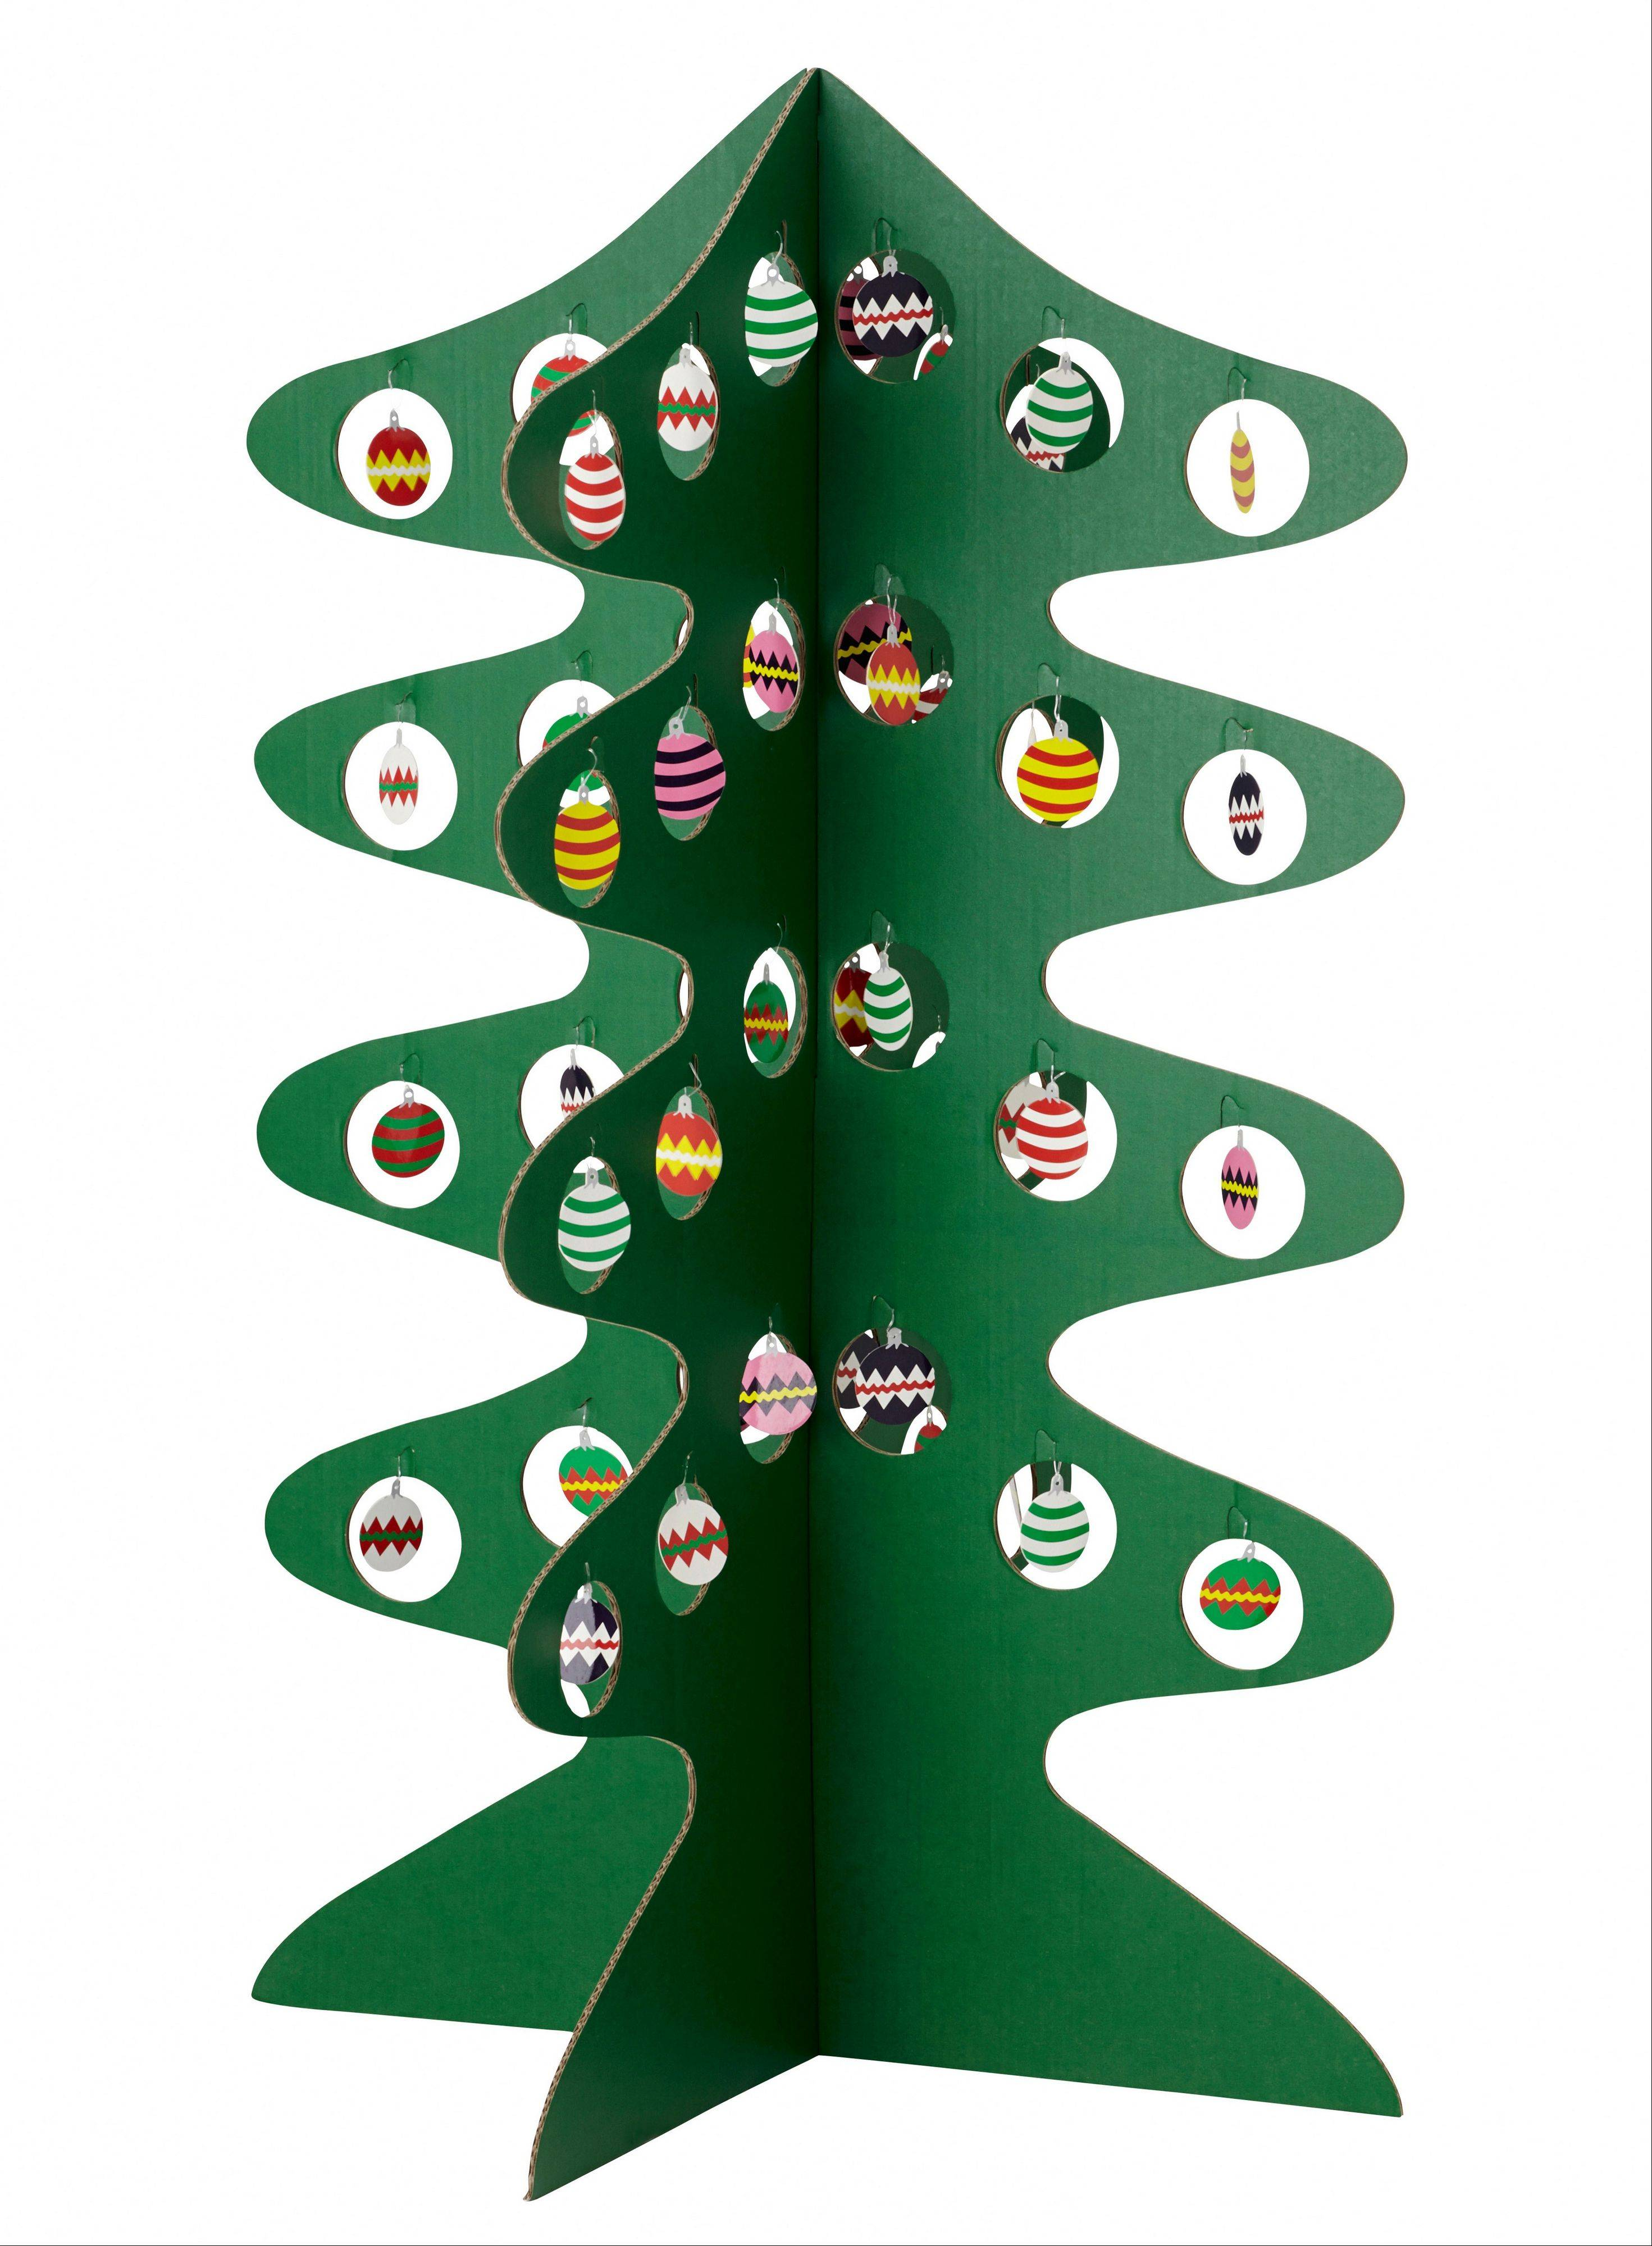 Christmas can be amply represented with a clever fold out cardboard tree, complete with ornaments. This tree may appeal to apartment dwellers and those with tree allergies.